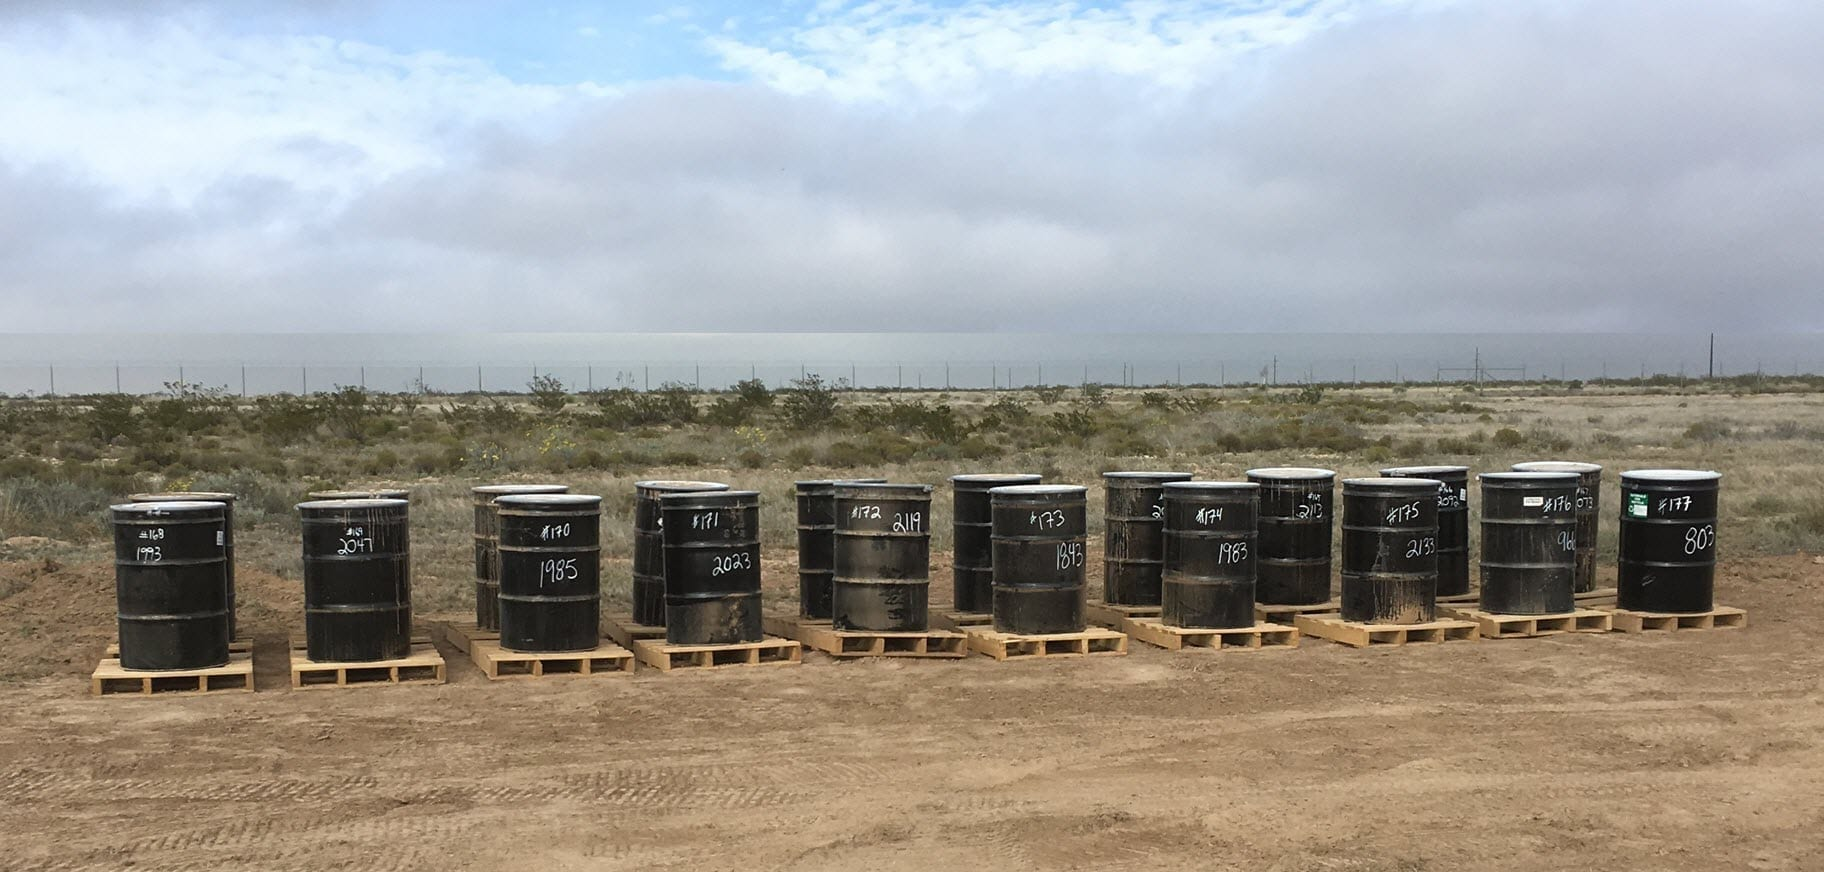 Lead impacted waste barrels - DIY Tips for Firing Ranges to Manage Their Lead-Containing Waste Onsite